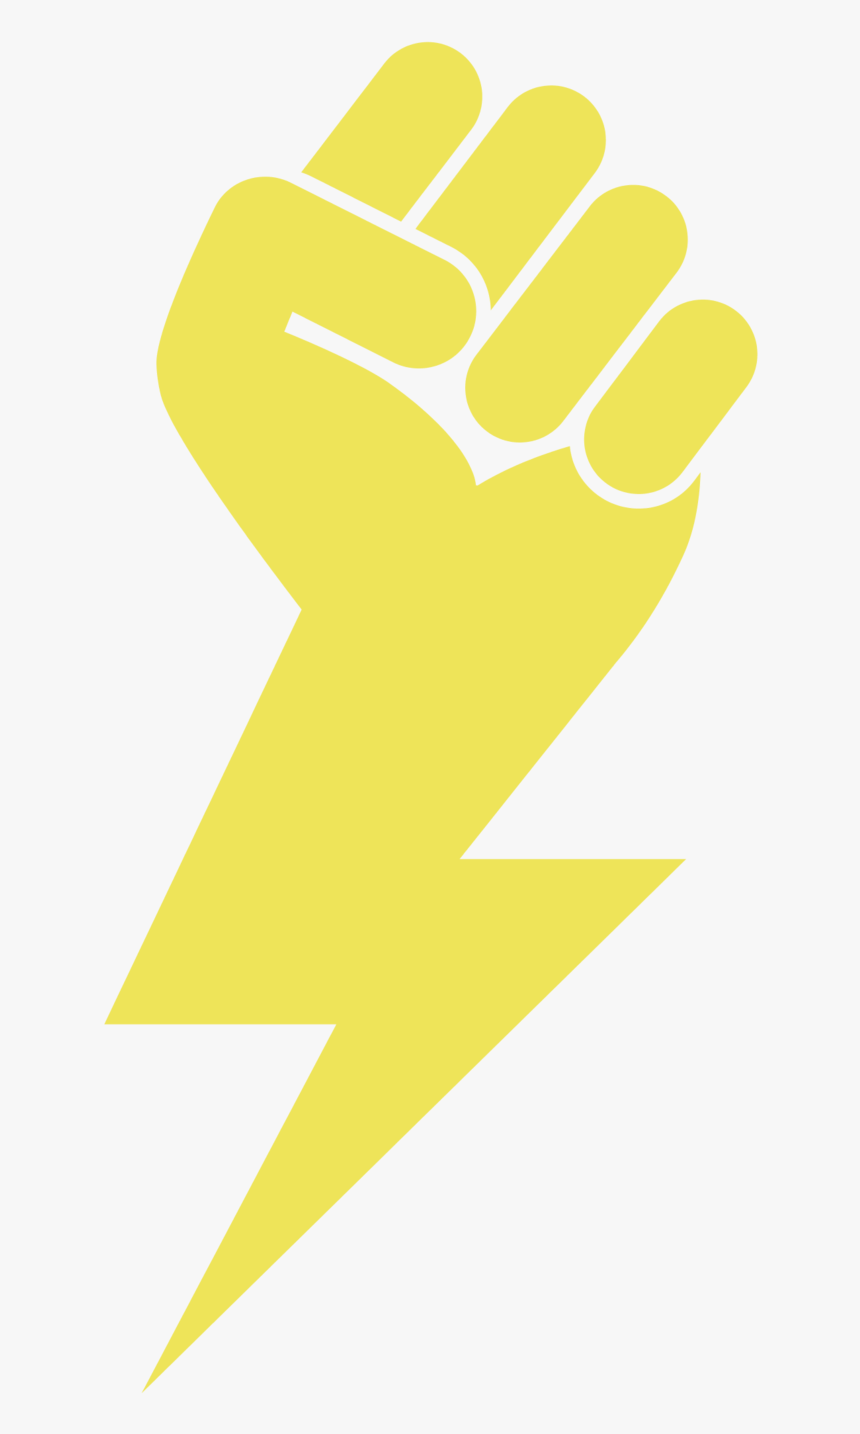 Revolution Fist Png Png Download Transparent Png Transparent Png Image Pngitem Check out our revolution hand fist selection for the very best in unique or custom, handmade pieces from our shops. pngitem